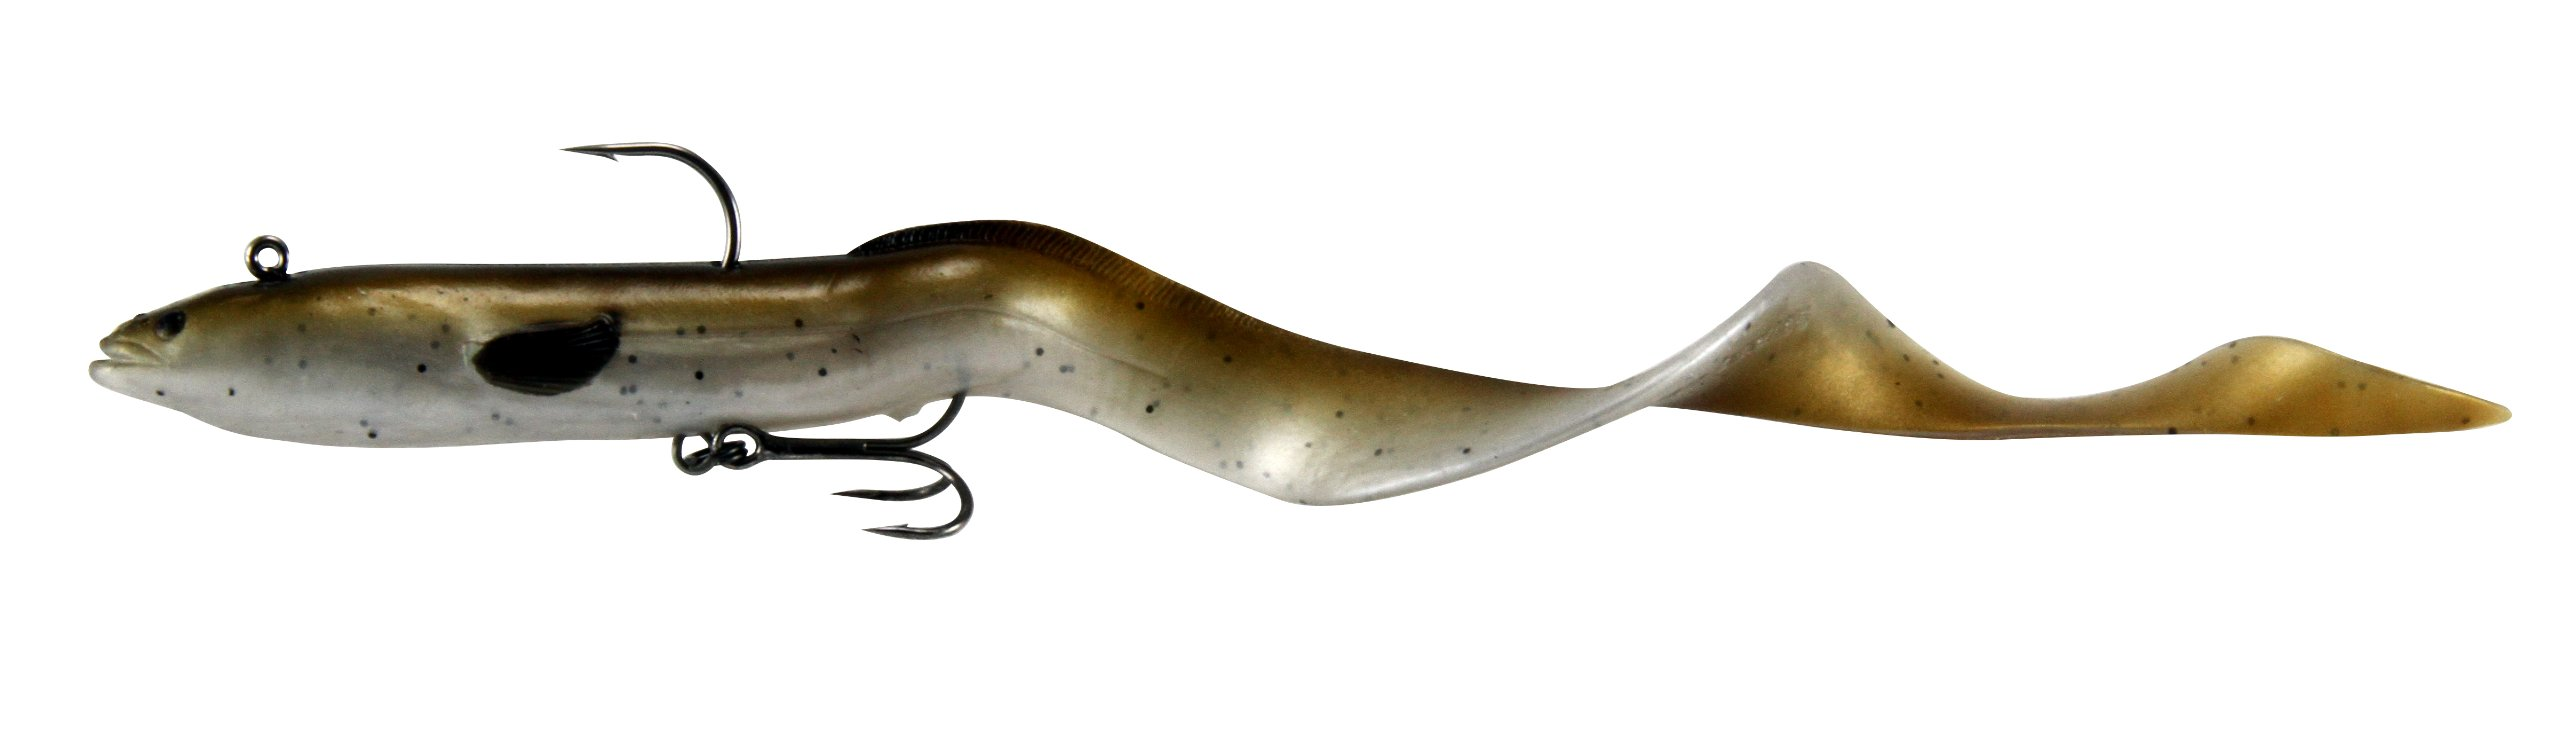 Okuma Fishing Tackle Savage Gear Real Eel Prerigged Slow Sinking Lure, Olive Brown Pearl, 12-Inch - 2 3/4-Ounce by Okuma Fishing Tackle (Image #1)